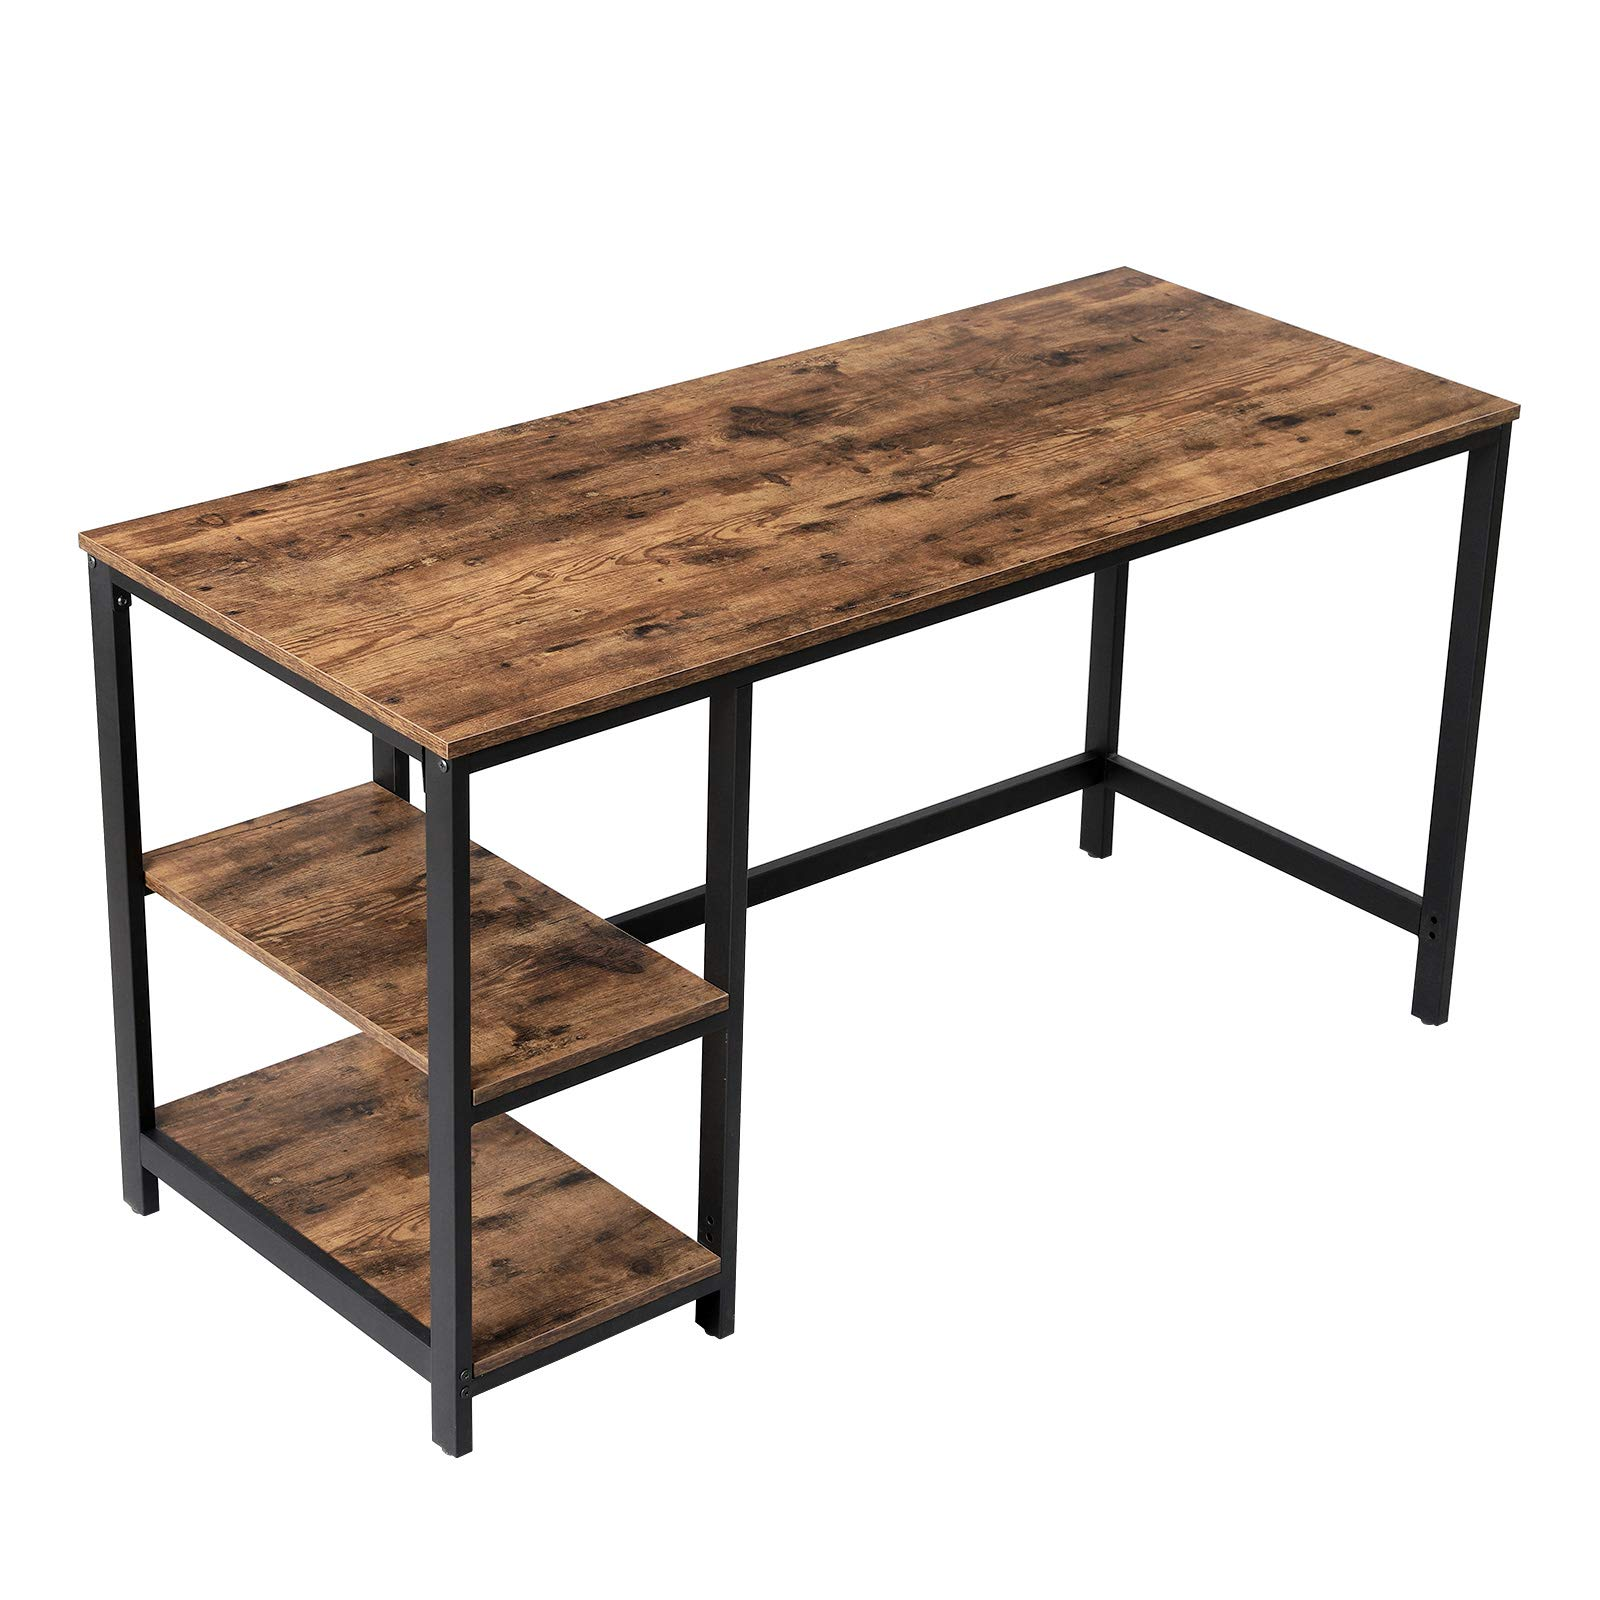 VASAGLE Industrial Computer Desk, 55 Inch Writing Desk, with 2 Storage Shelves on Left or Right, Stable Metal Frame, Easy Assembly ULWD55X by VASAGLE